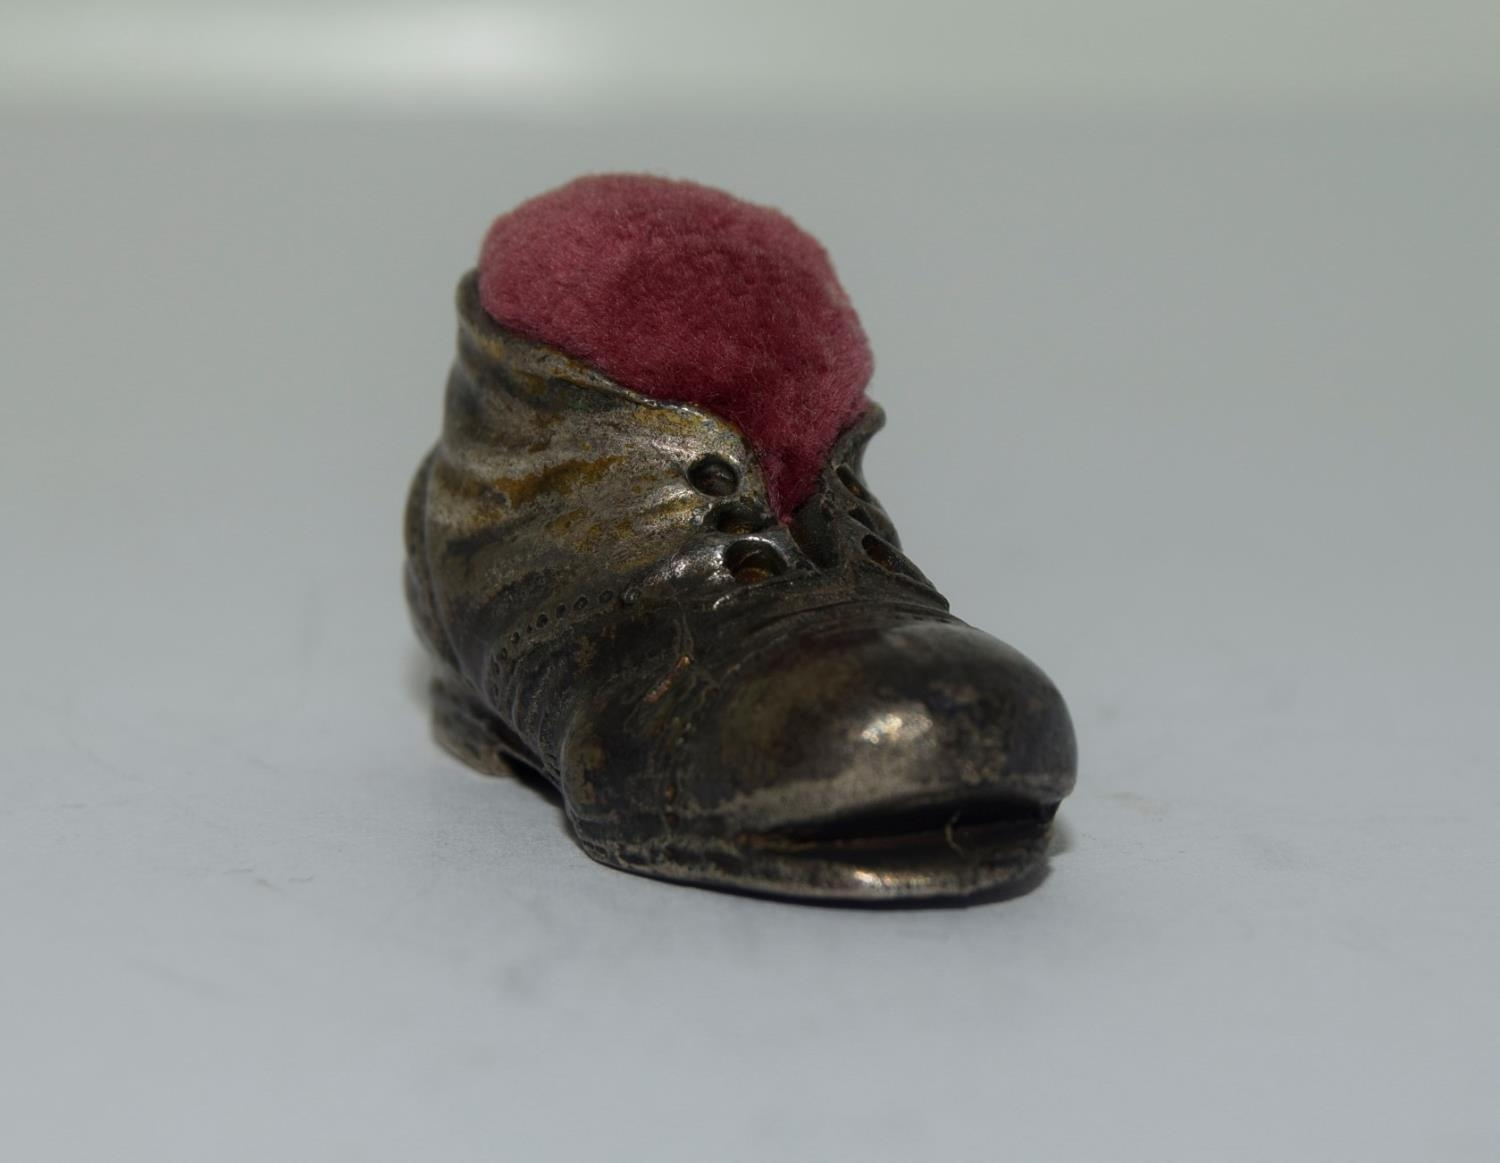 Silver pin cushion in the form of an old boot